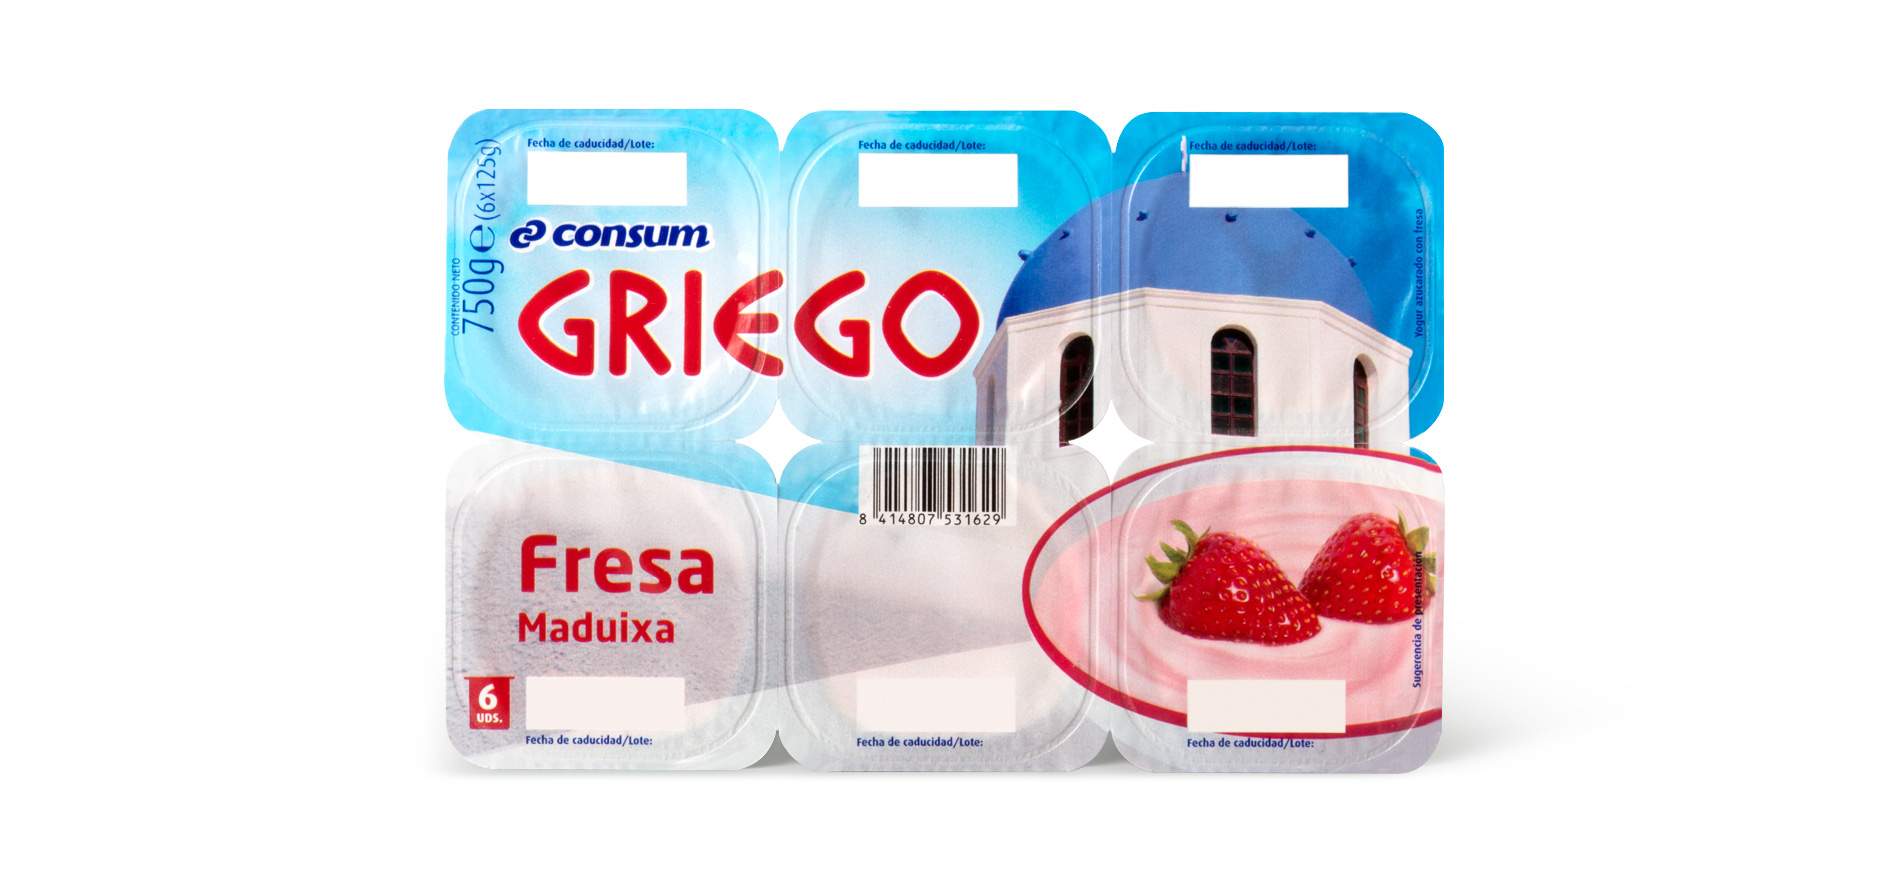 Diseño del Packaging de Yogures Griegos de Supermercados Consum por Puigdemont Roca Design Agency